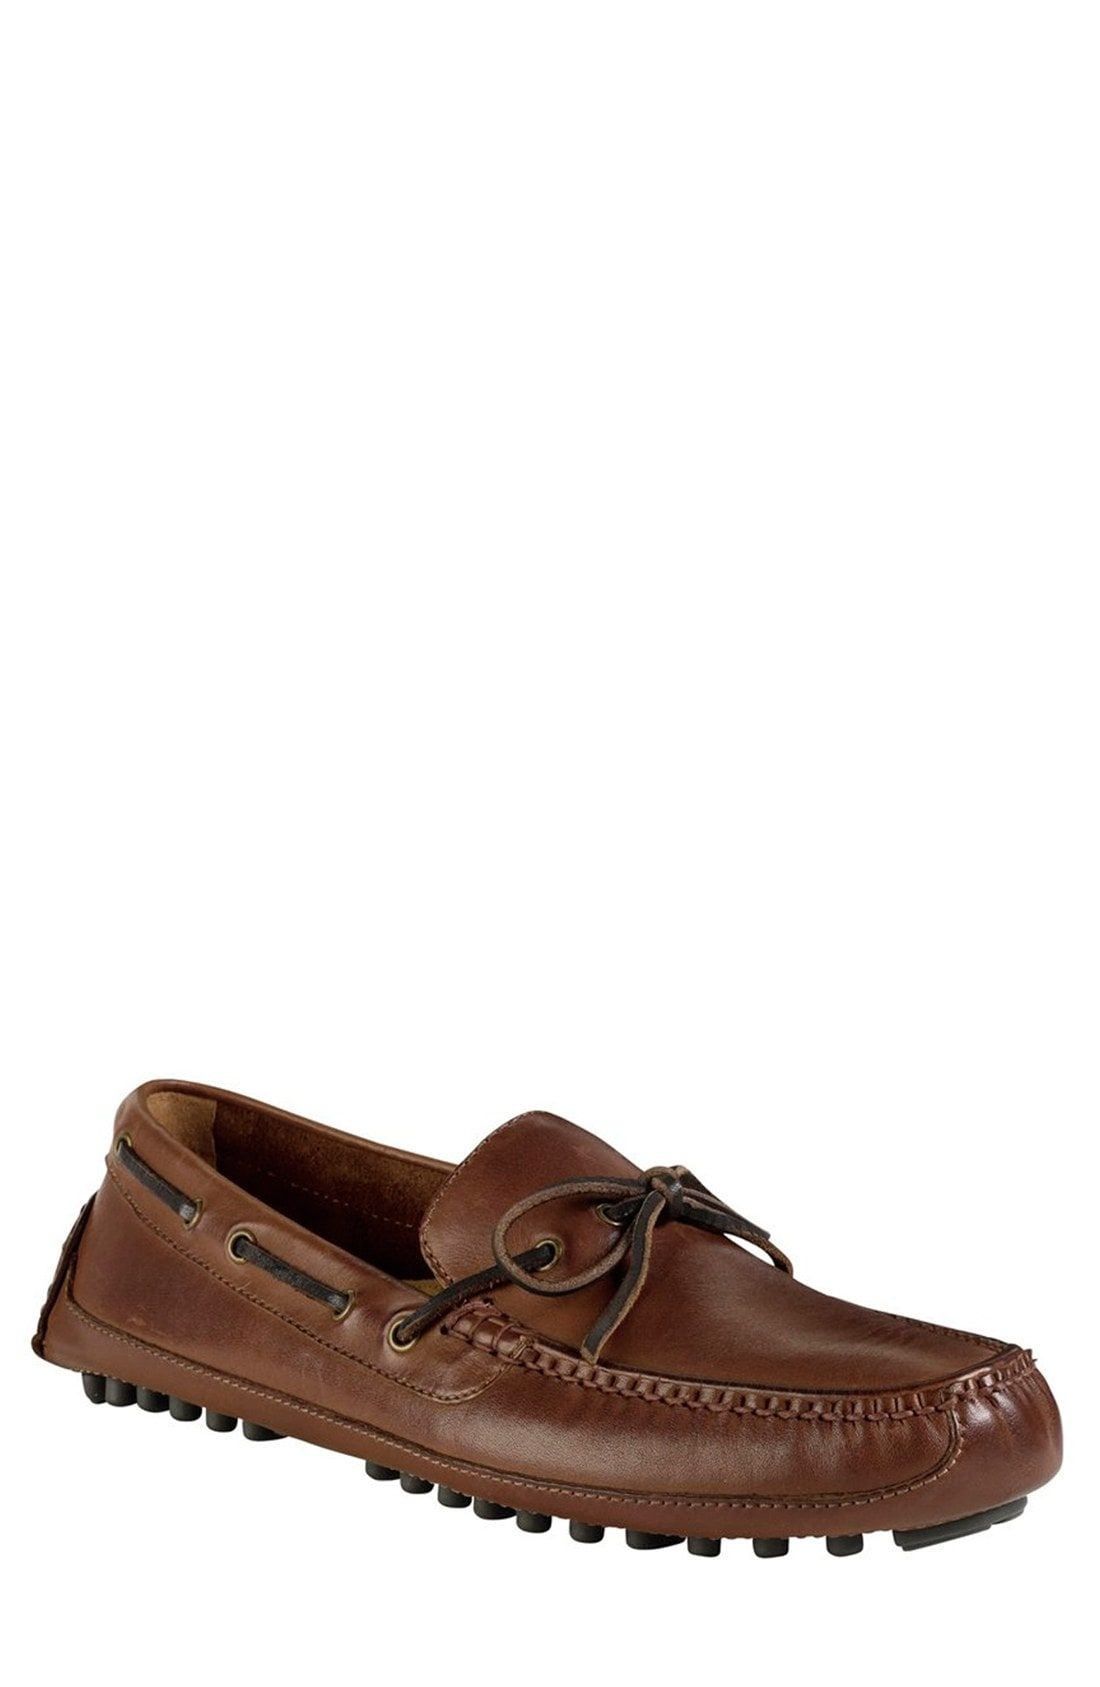 2611bd4e125 COLE HAAN  GRANT CANOE CAMP  DRIVING MOCCASIN.  colehaan  shoes ...